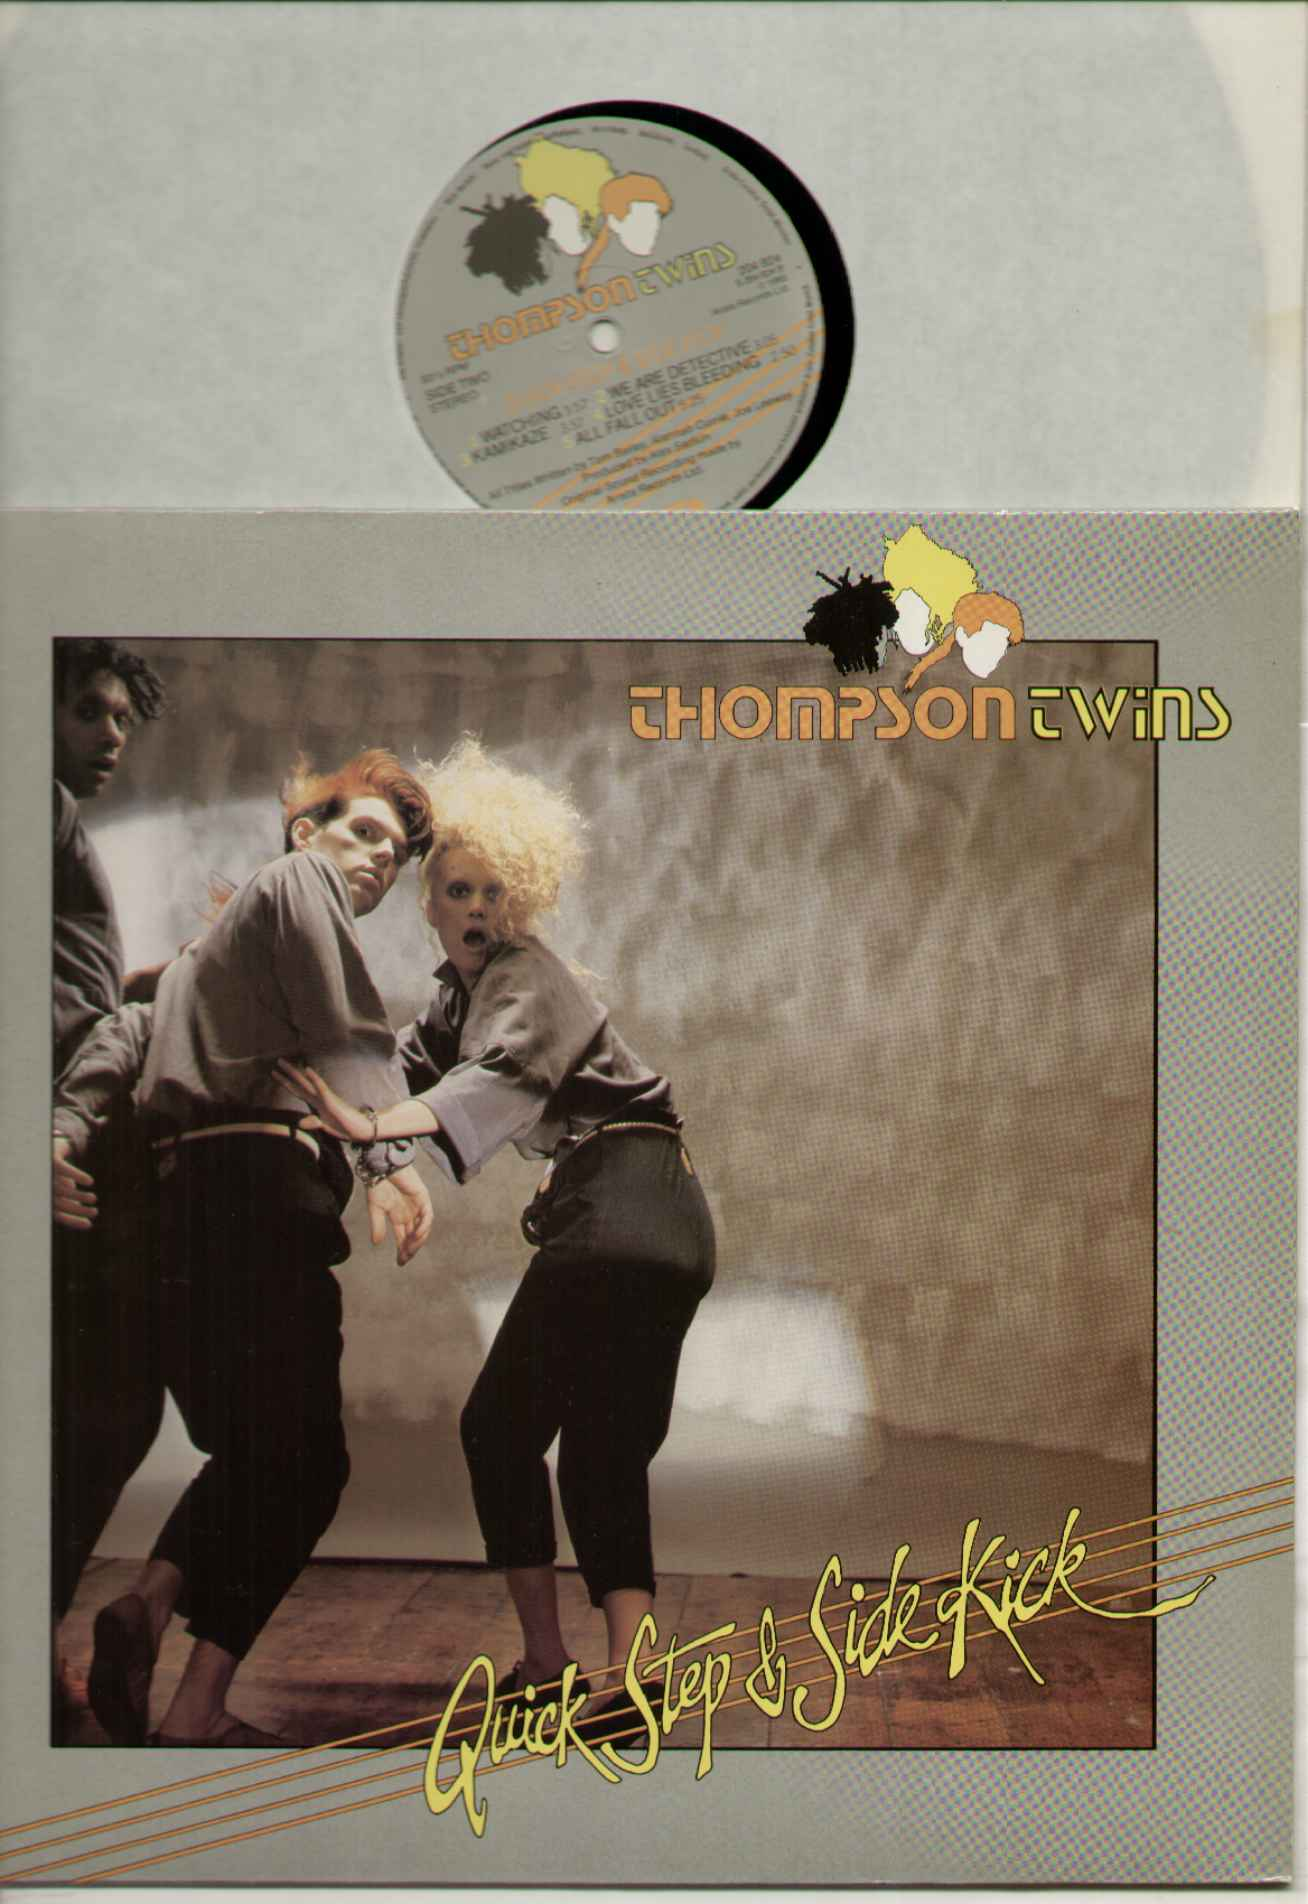 Thompson Twins Quick+Step+And+Side+Kick LP